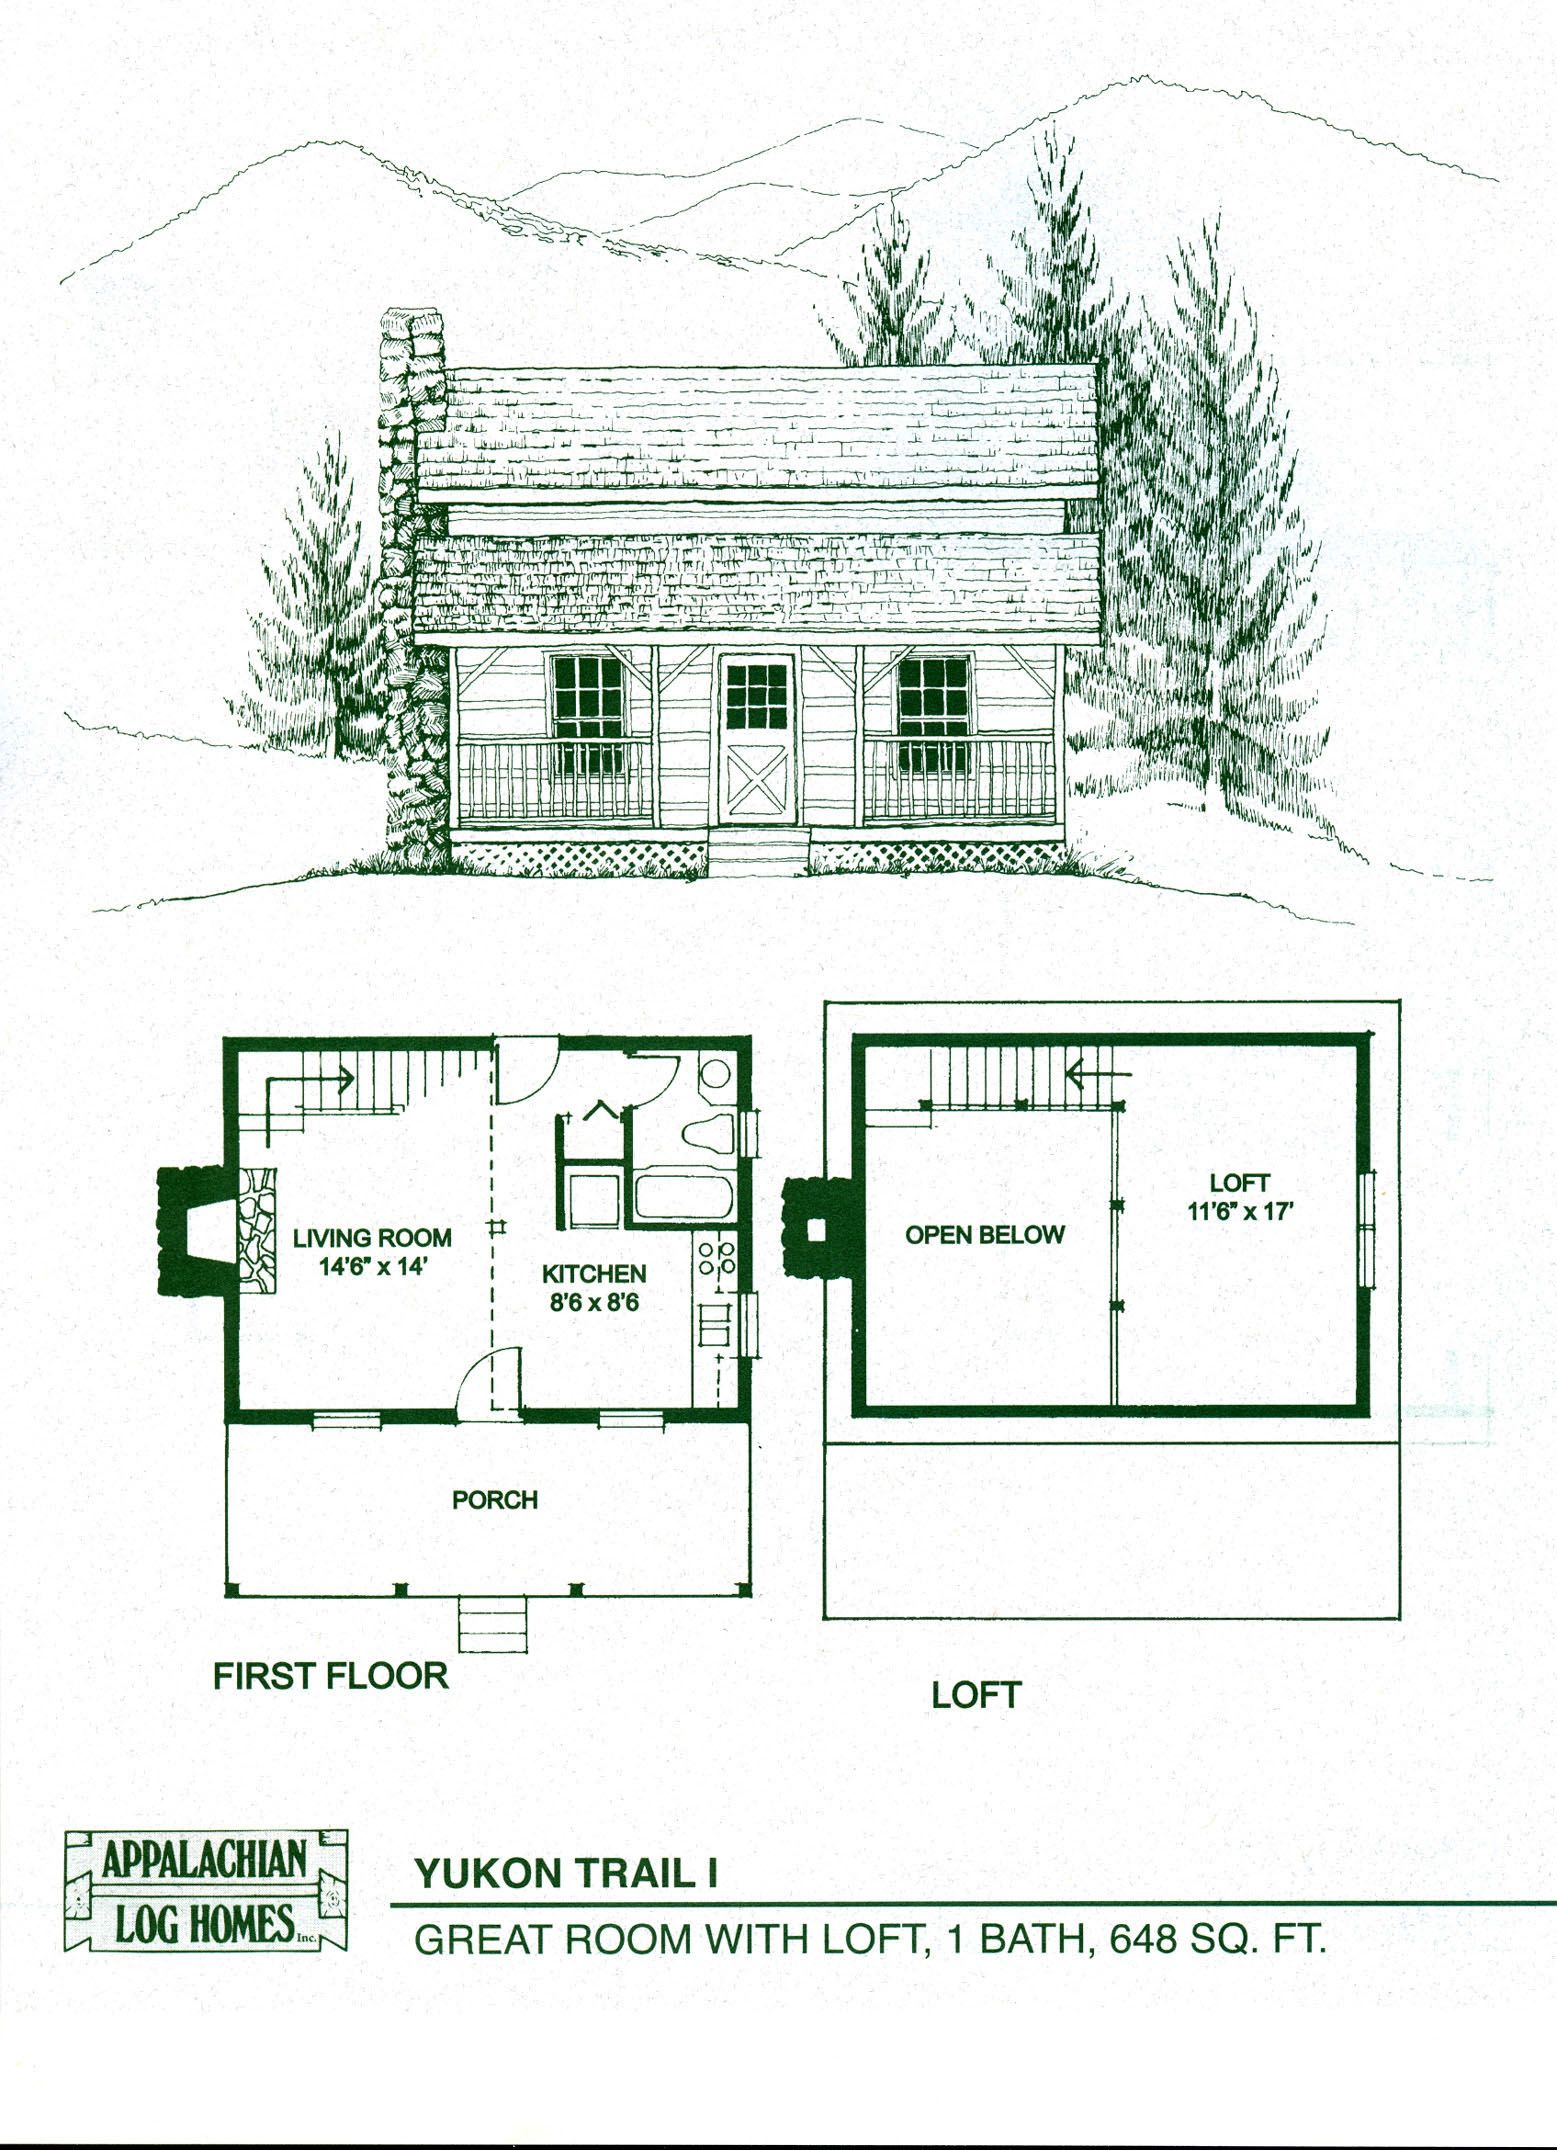 Log home floor plans log cabin kits appalachian log for Small cottage home designs